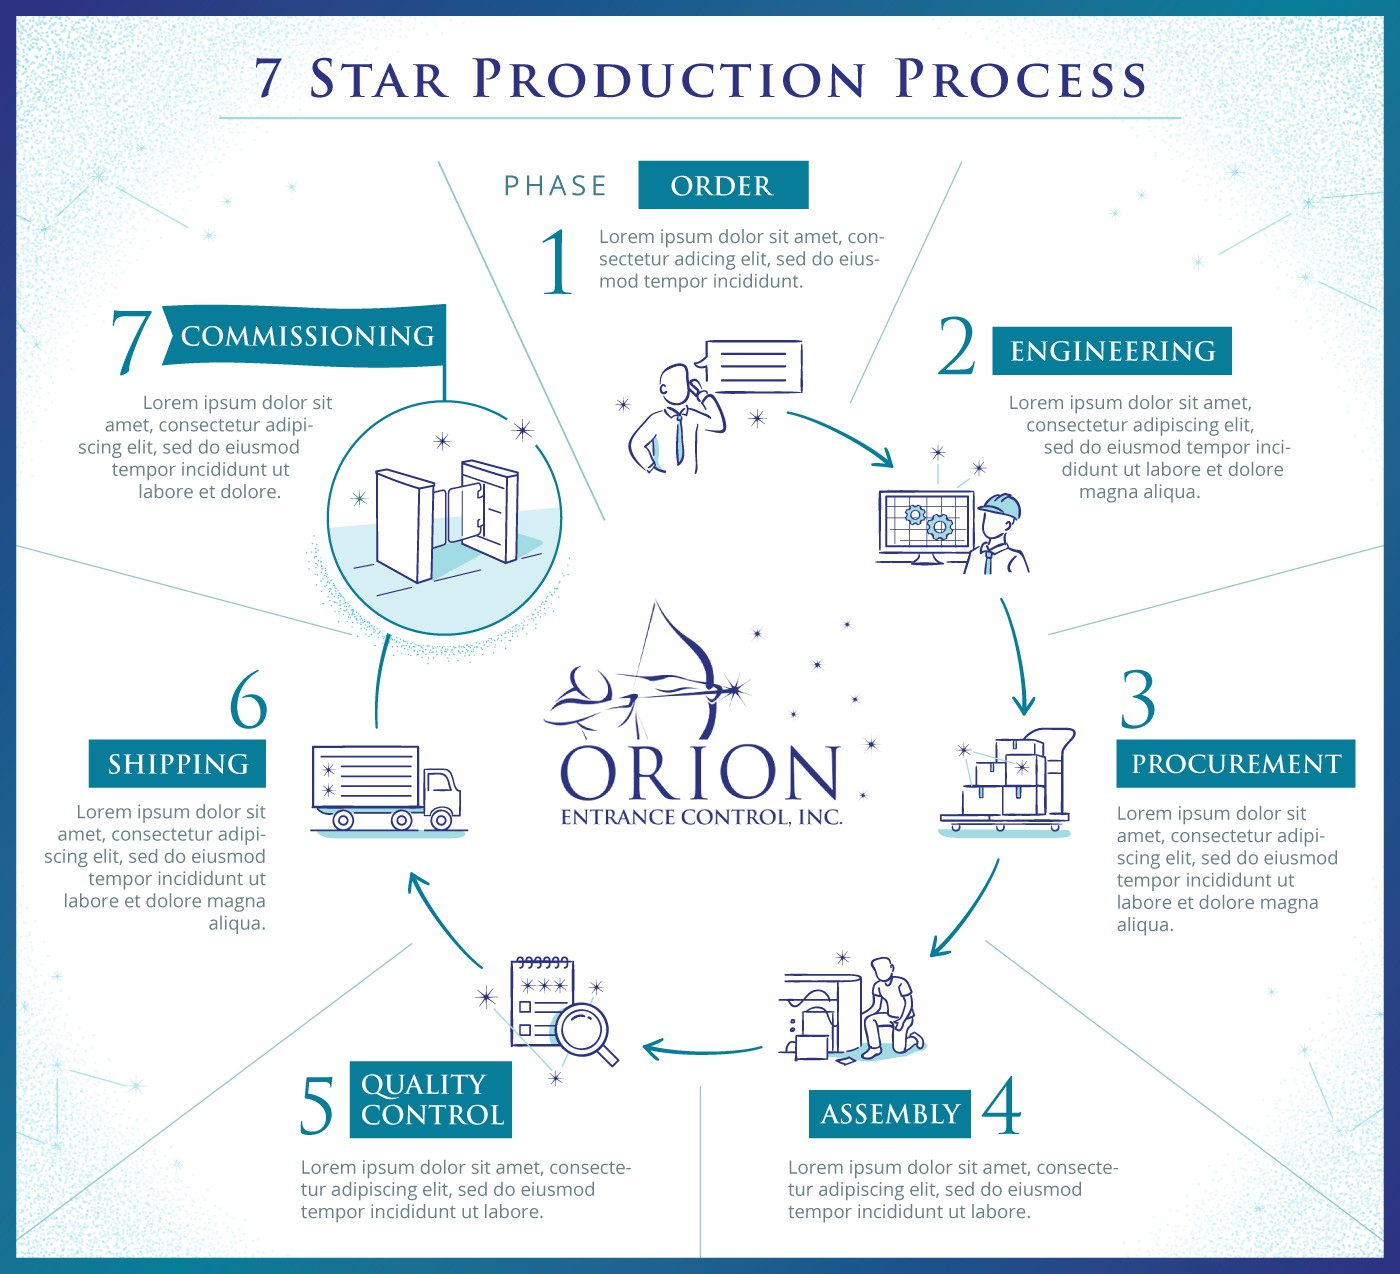 Design Our Modern, Clean, Clever 7 Star Production Process